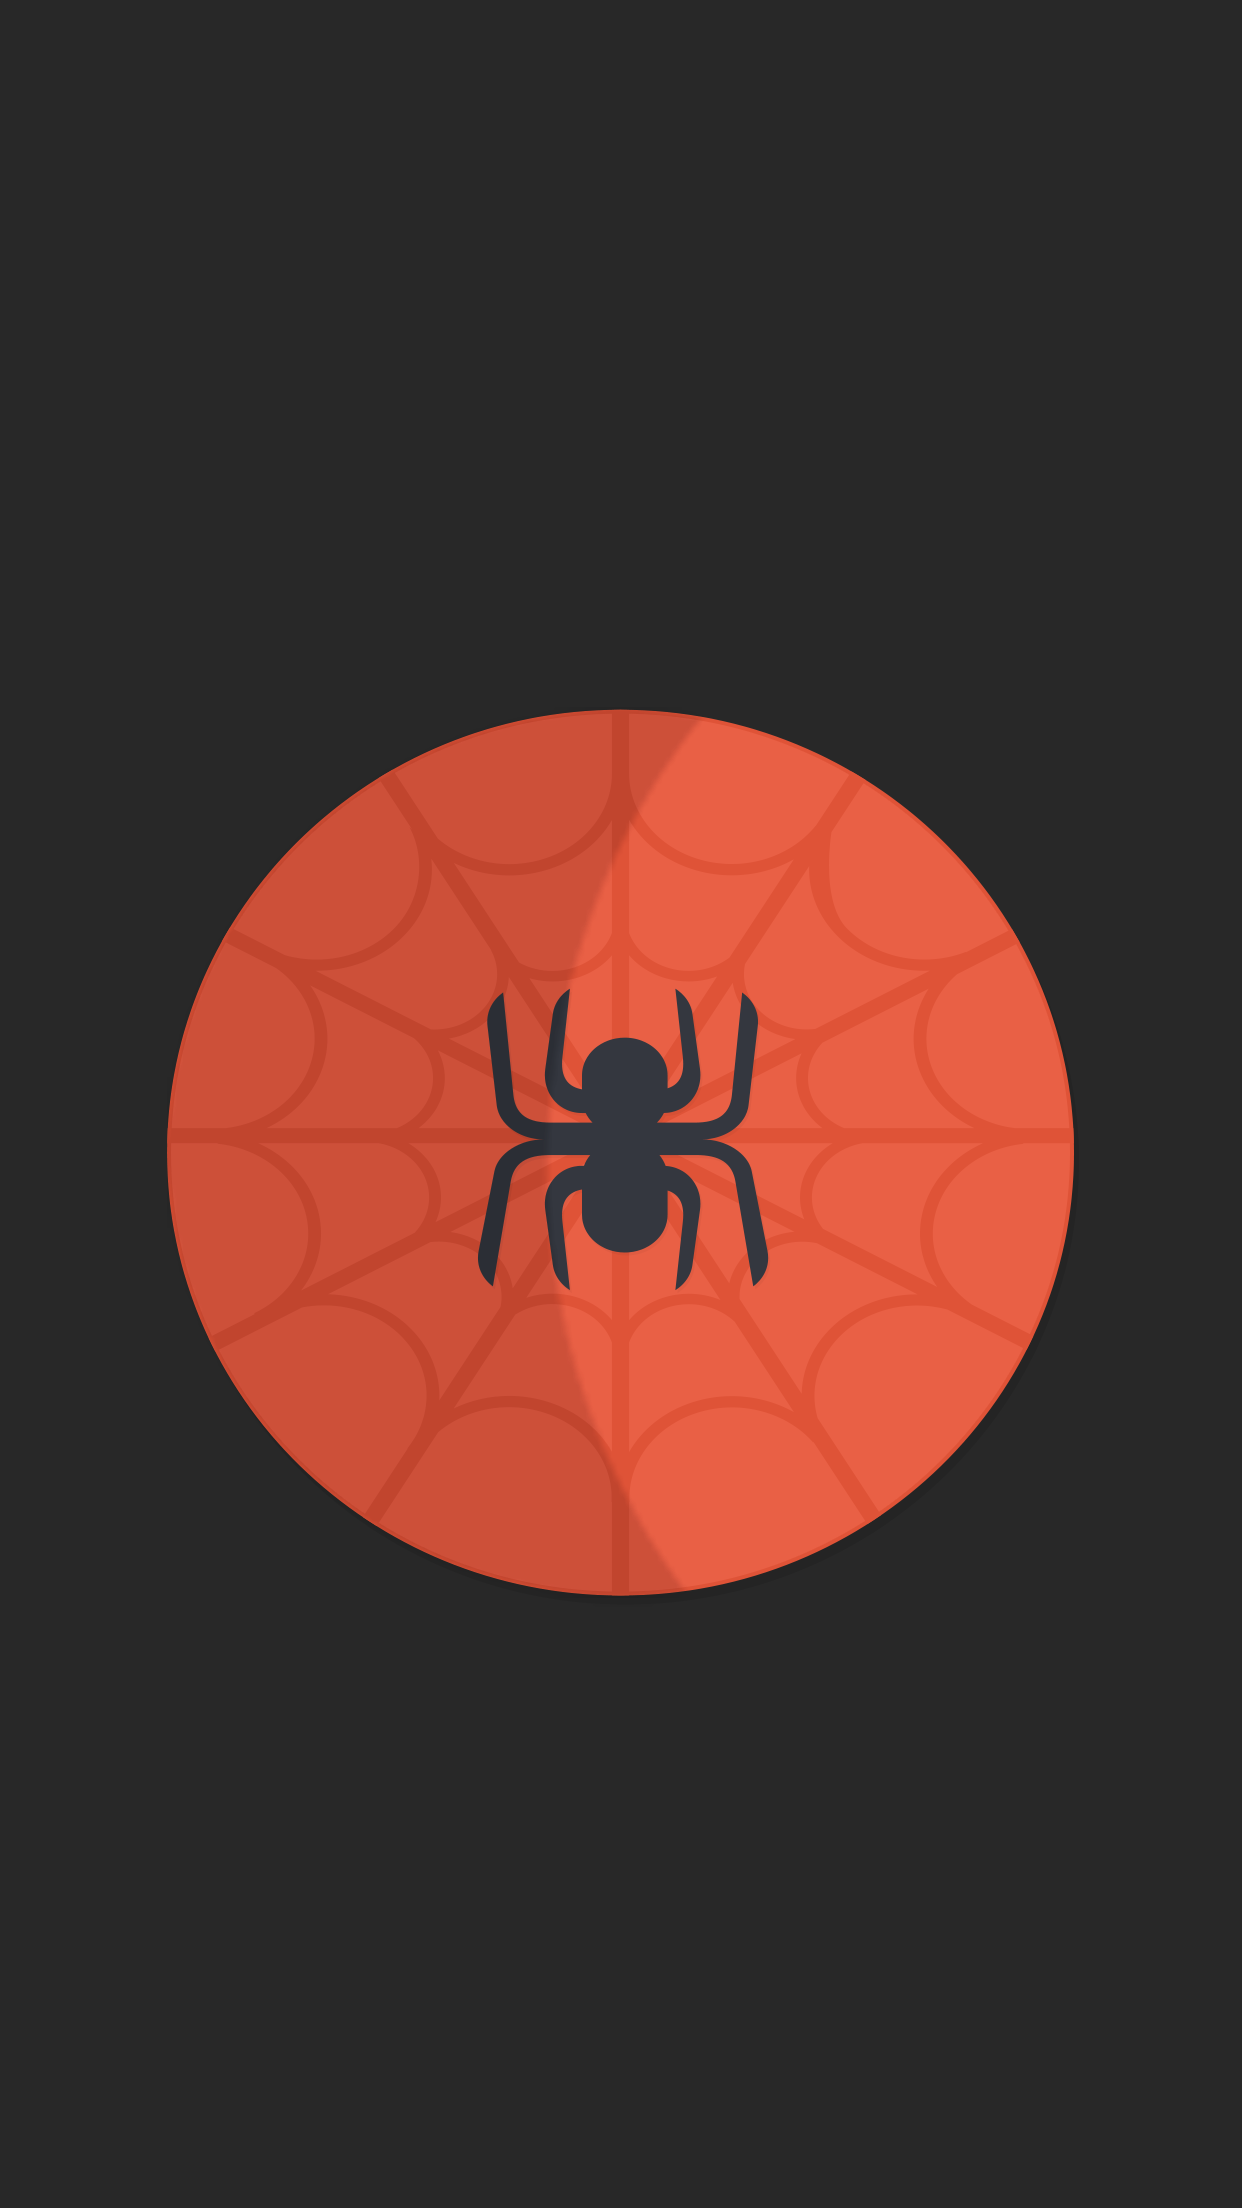 Minimal Spider iPhone Wallpaper